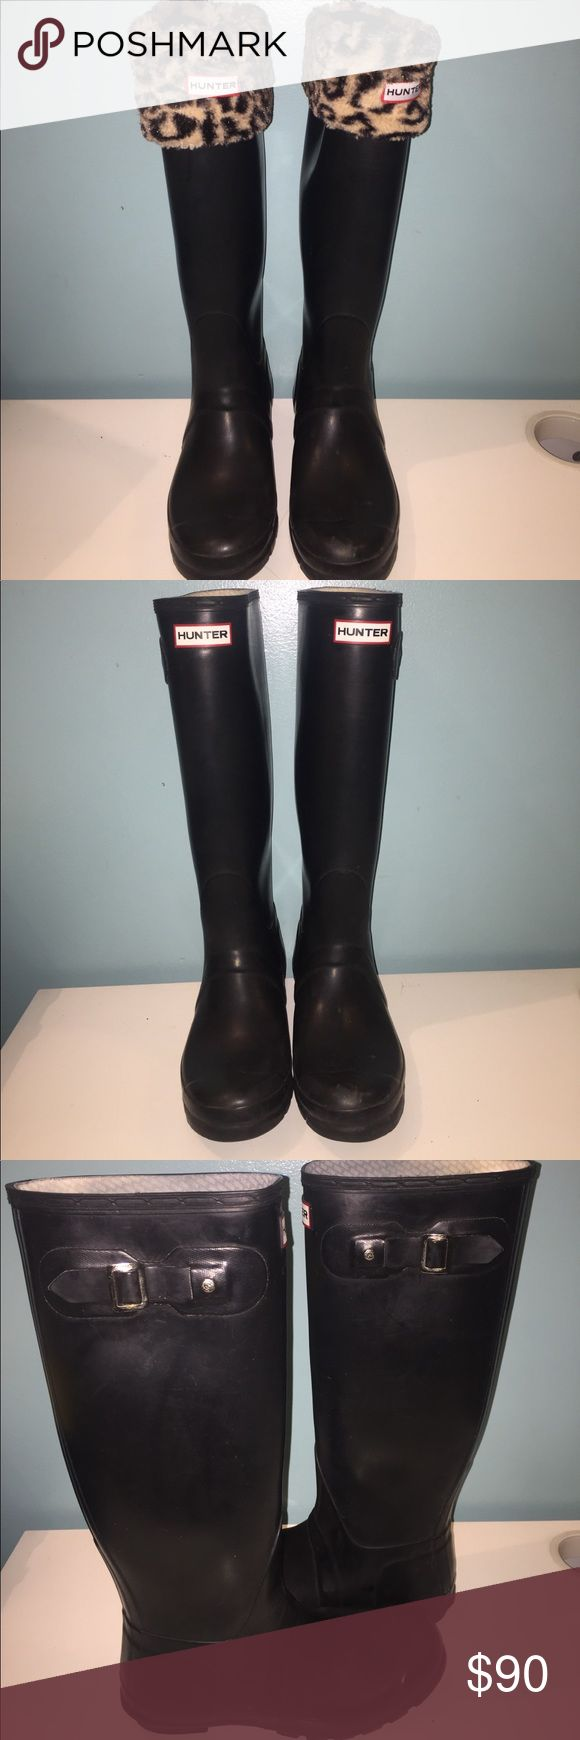 Hunter Rain boots Stylish black hunter boots. Welly Socks included. Box included. Hunter Boots Shoes Winter & Rain Boots